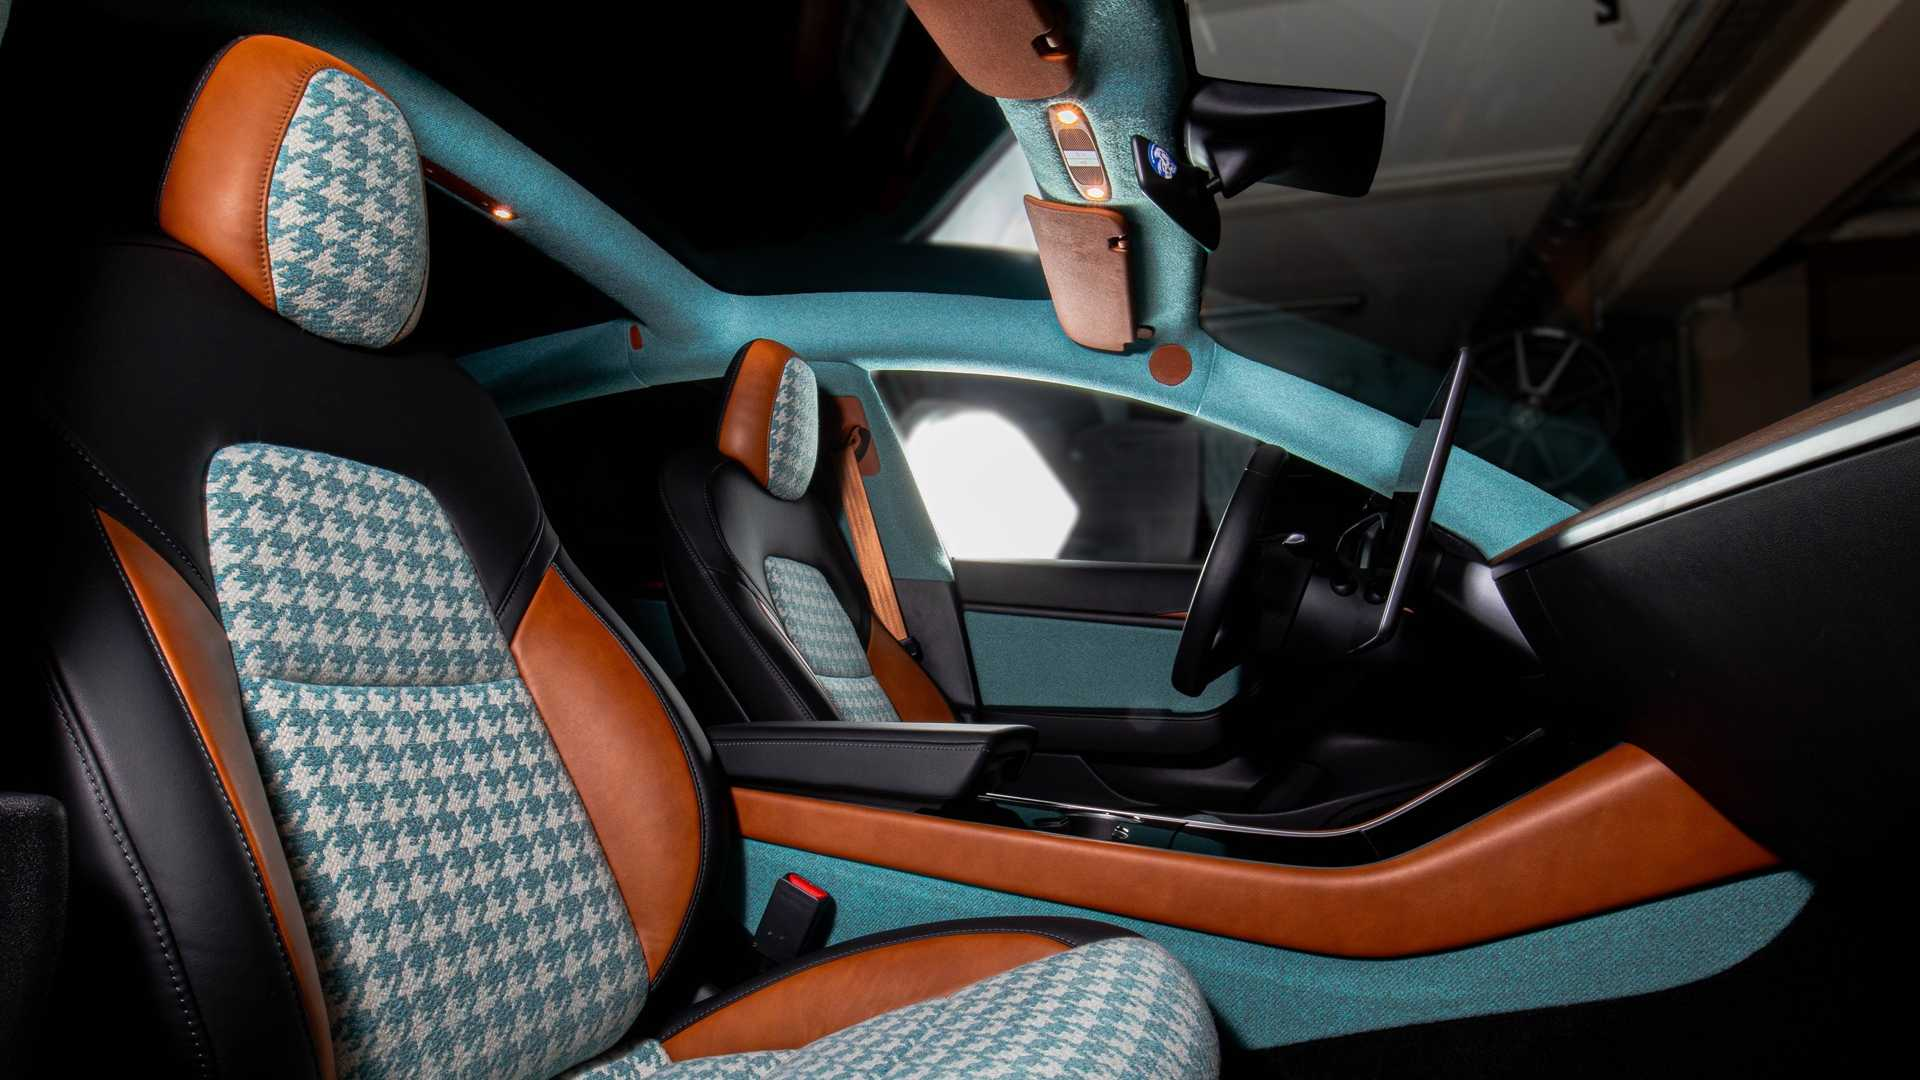 Ever since the Tesla Model 3 debuted in March 2016, people have been quarreling about its interior design quality.